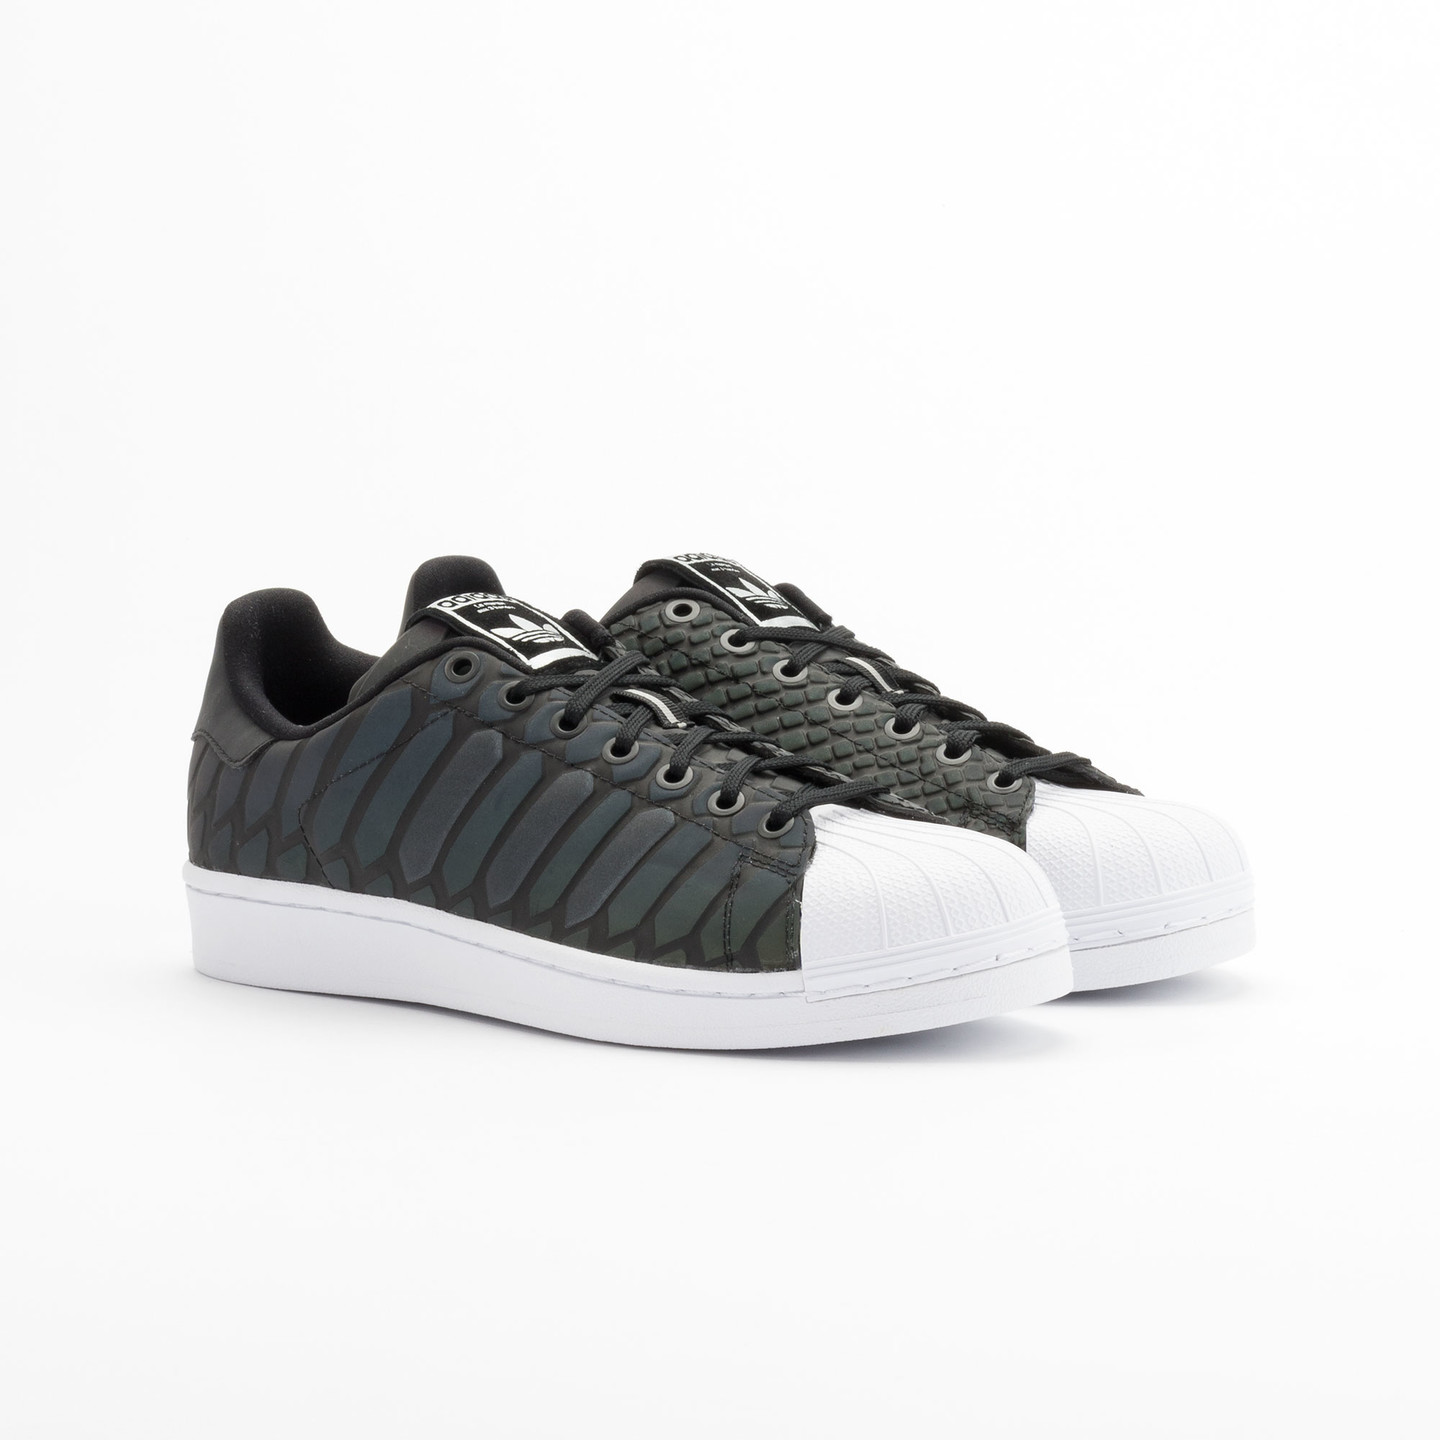 Adidas Superstar Xeno Pack Cblack / Supcol / Ftwwht D69366-38.66